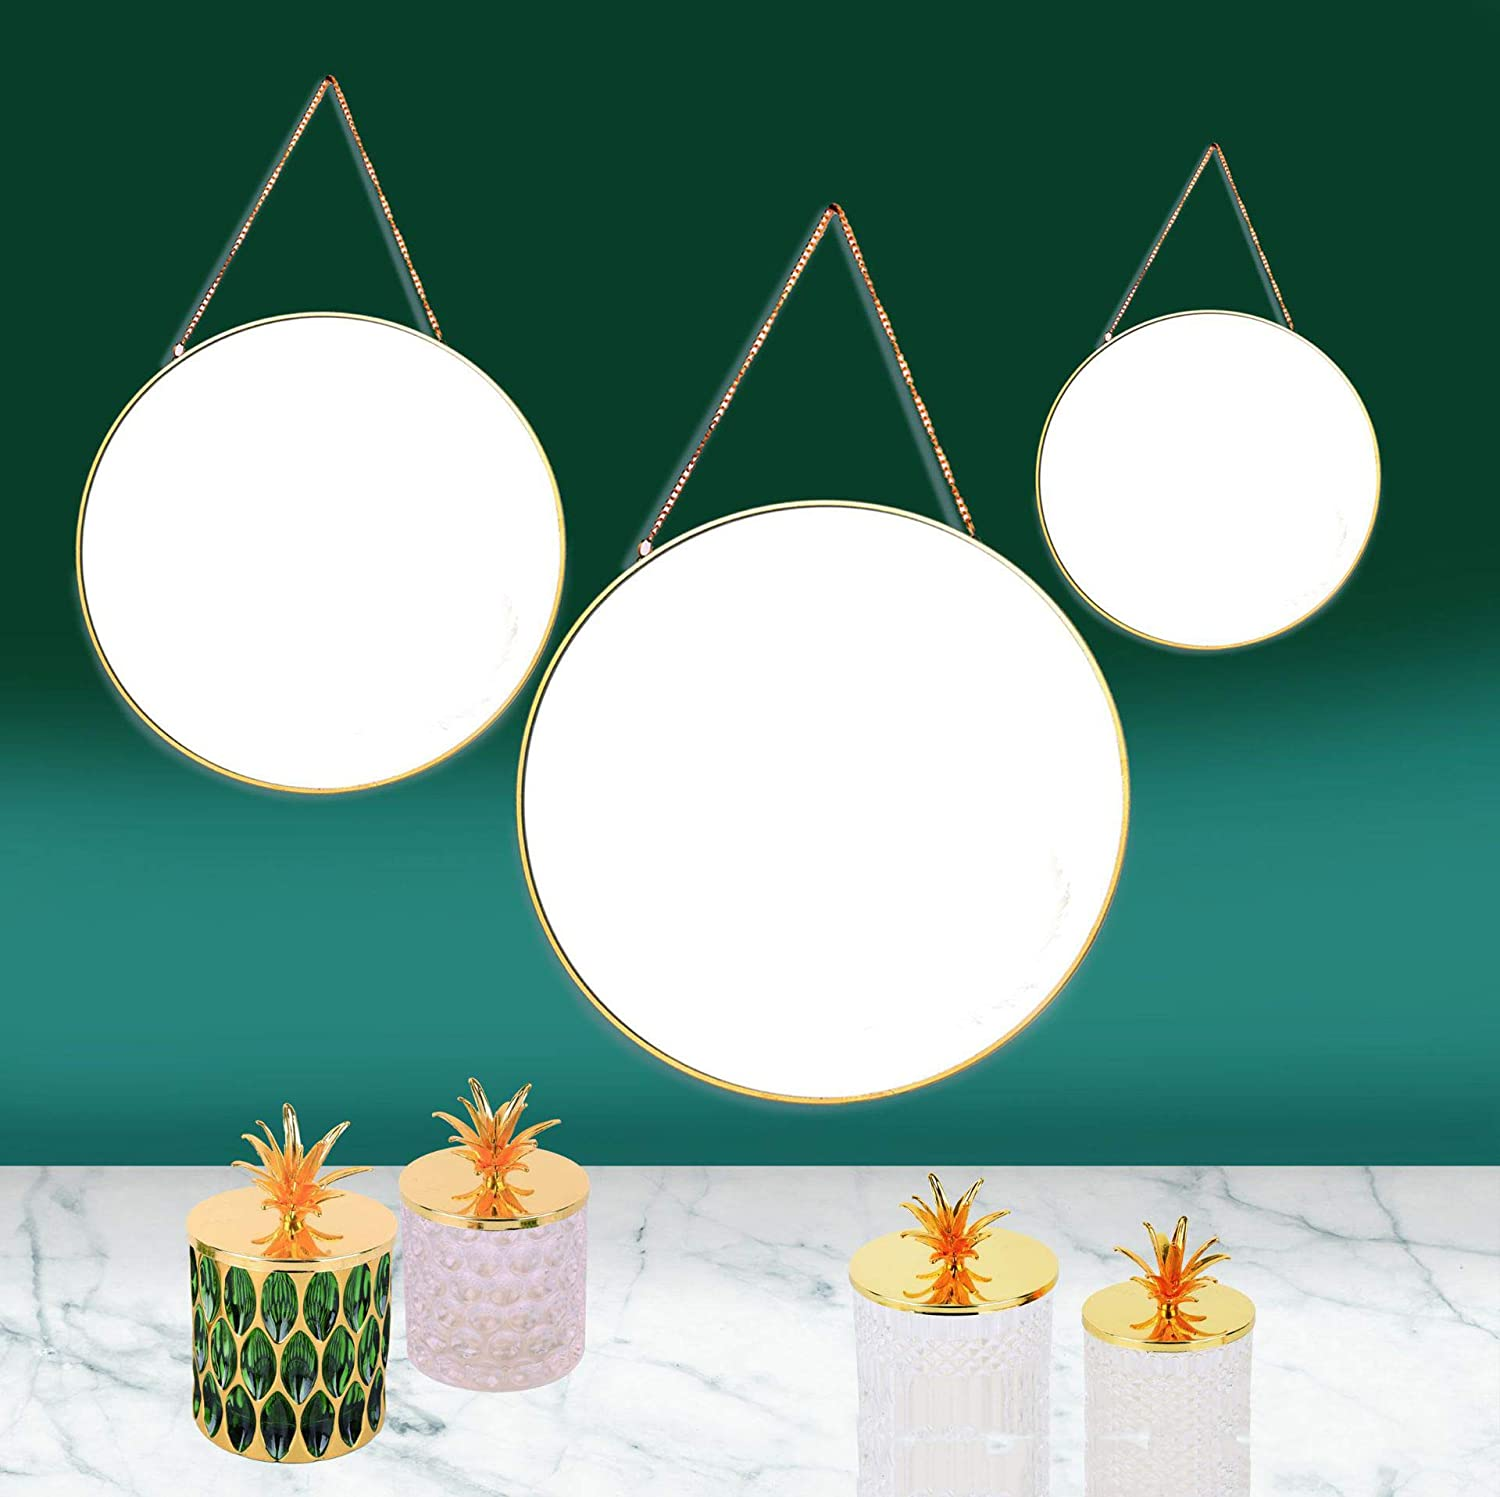 Gold Hosoncovy Metal Frame Round Wall Mirror Hanging Decorative Mirror with Chain 24CM Diameter Makeup Mirror Vanity Mirror for Bathroom Living Room Bedroom